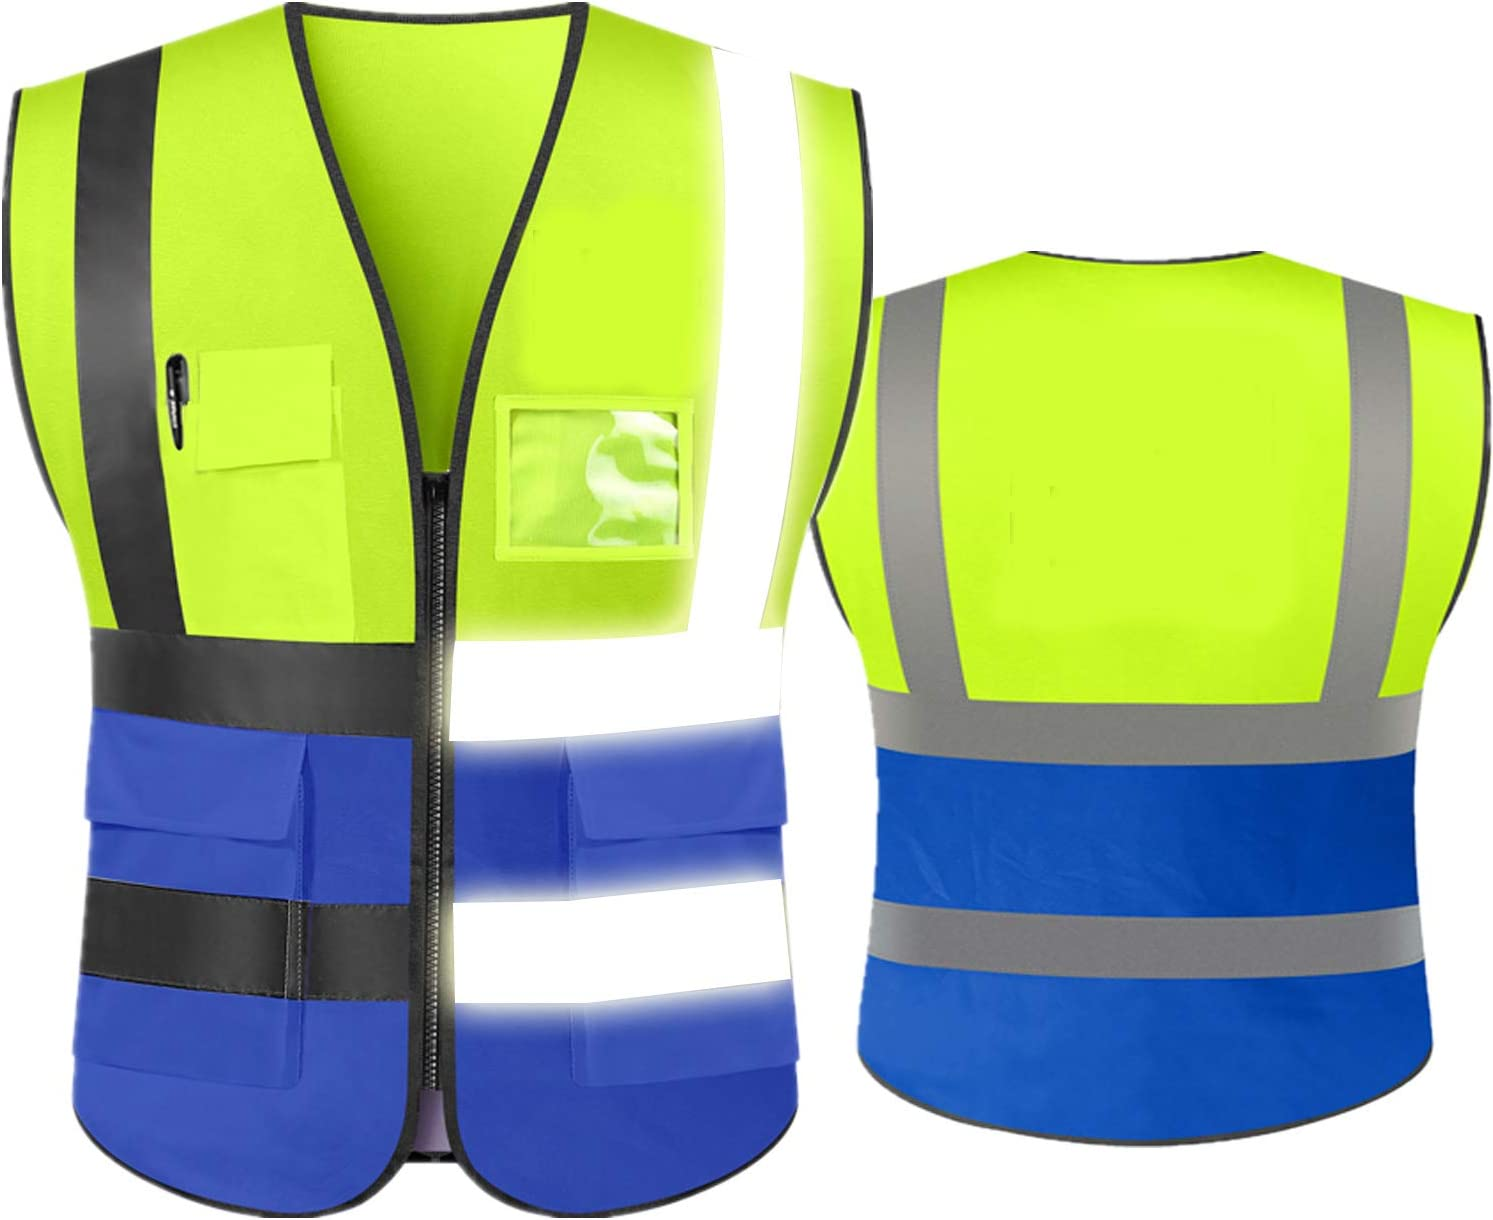 High Max 75% OFF Visibility Safety Reflective Vest Pockets with C quality assurance Zipper and